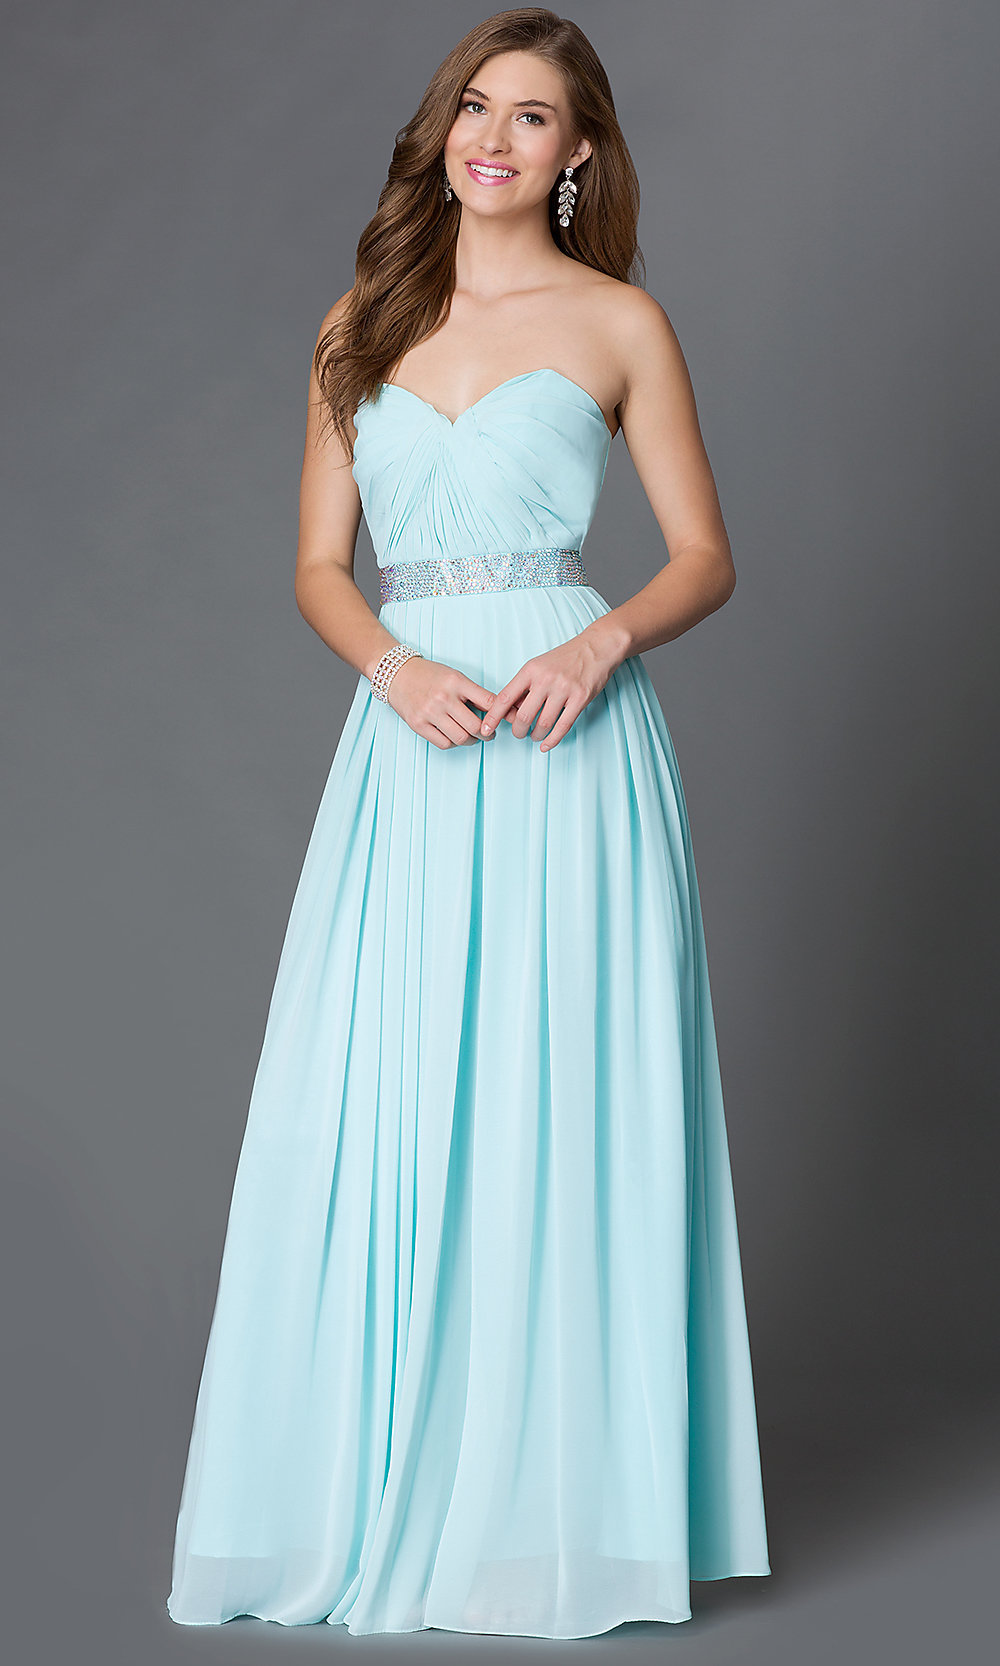 Long Sweetheart Corset Prom Dress Promgirl